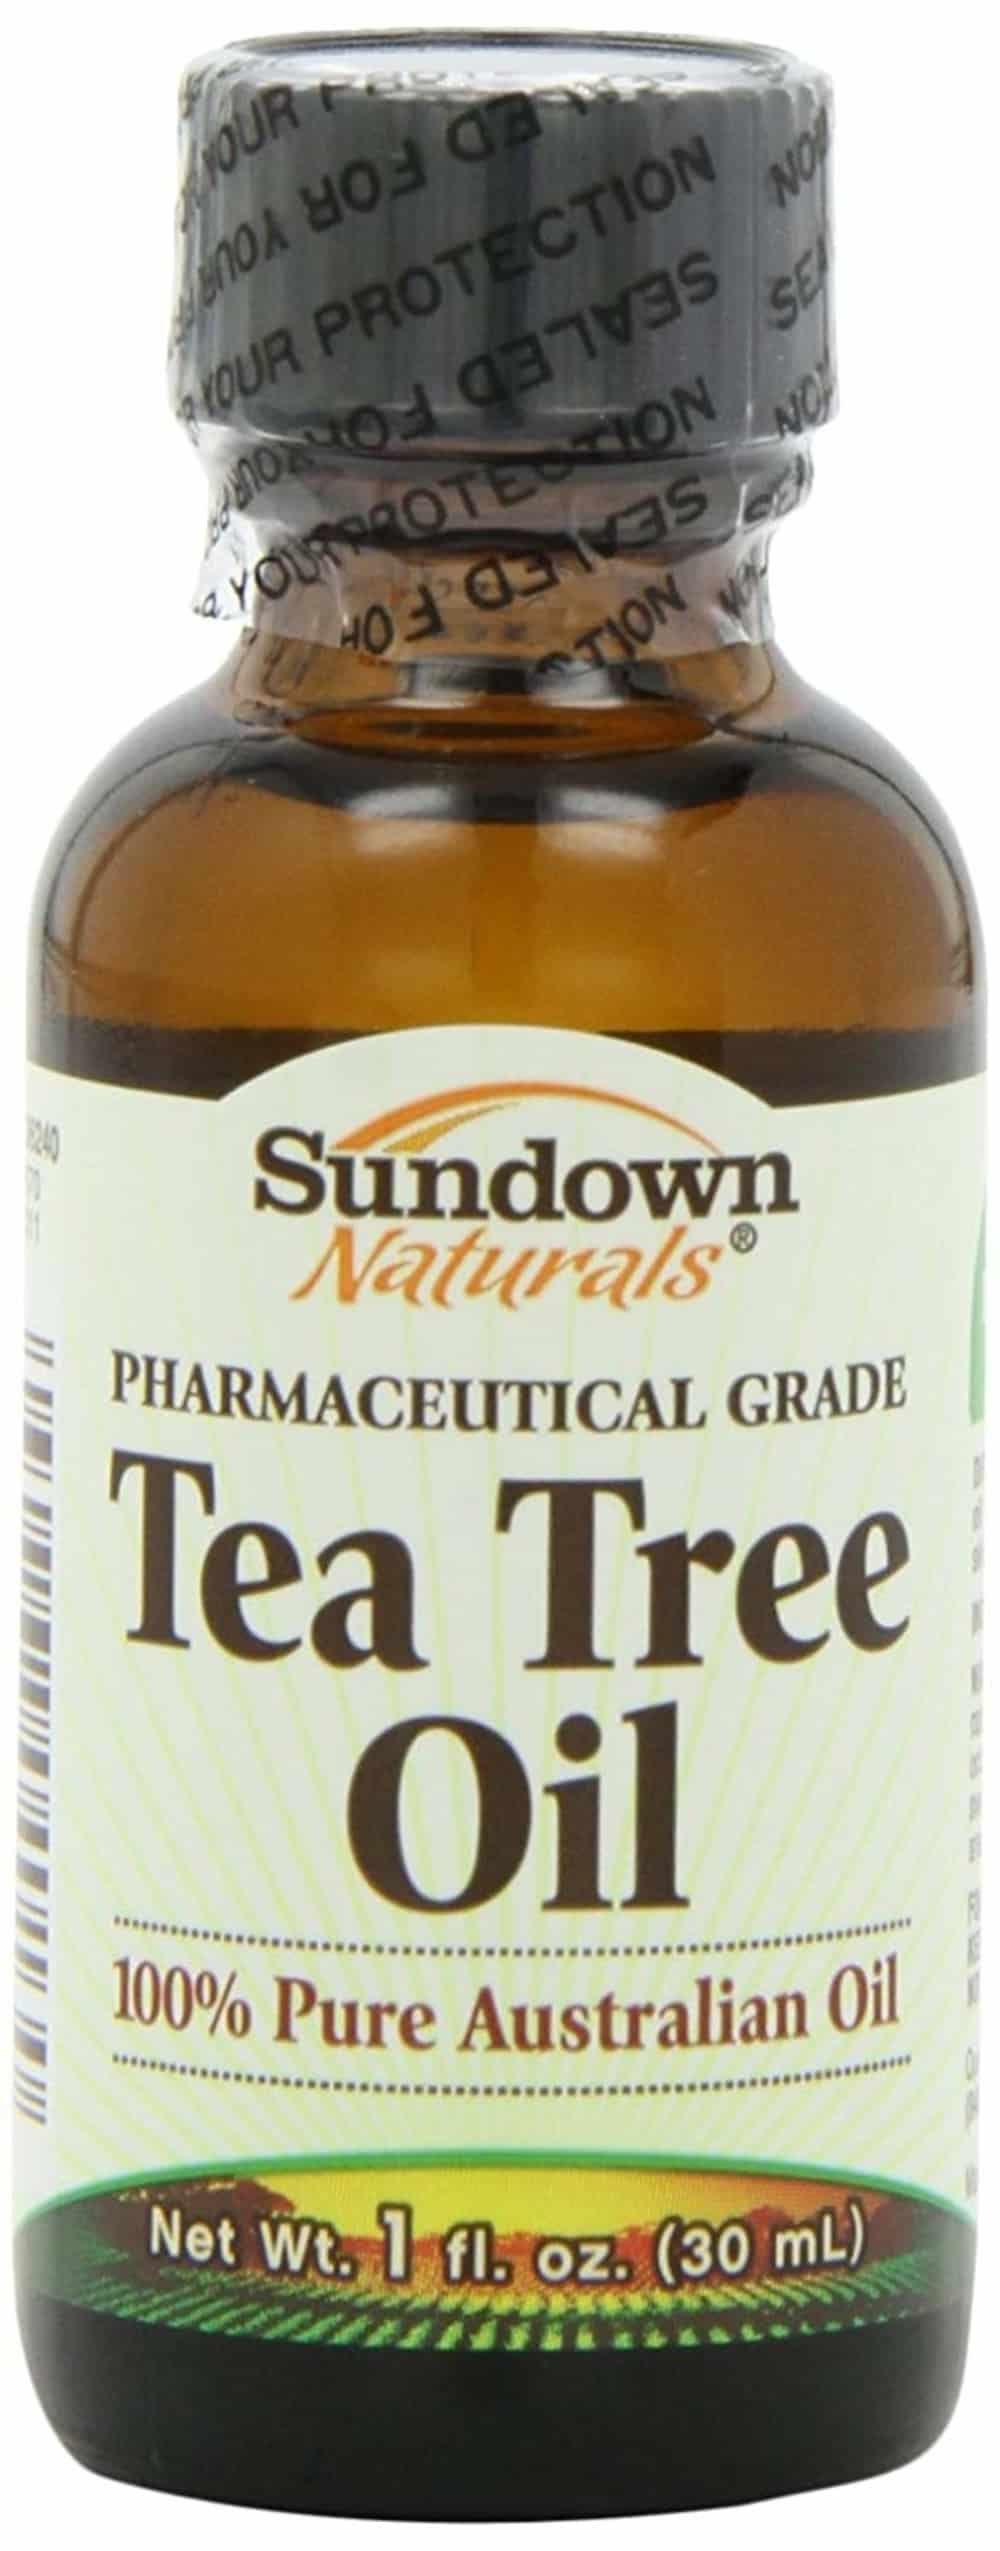 Sundown Pharmaceutical Grade Tea Tree Oil